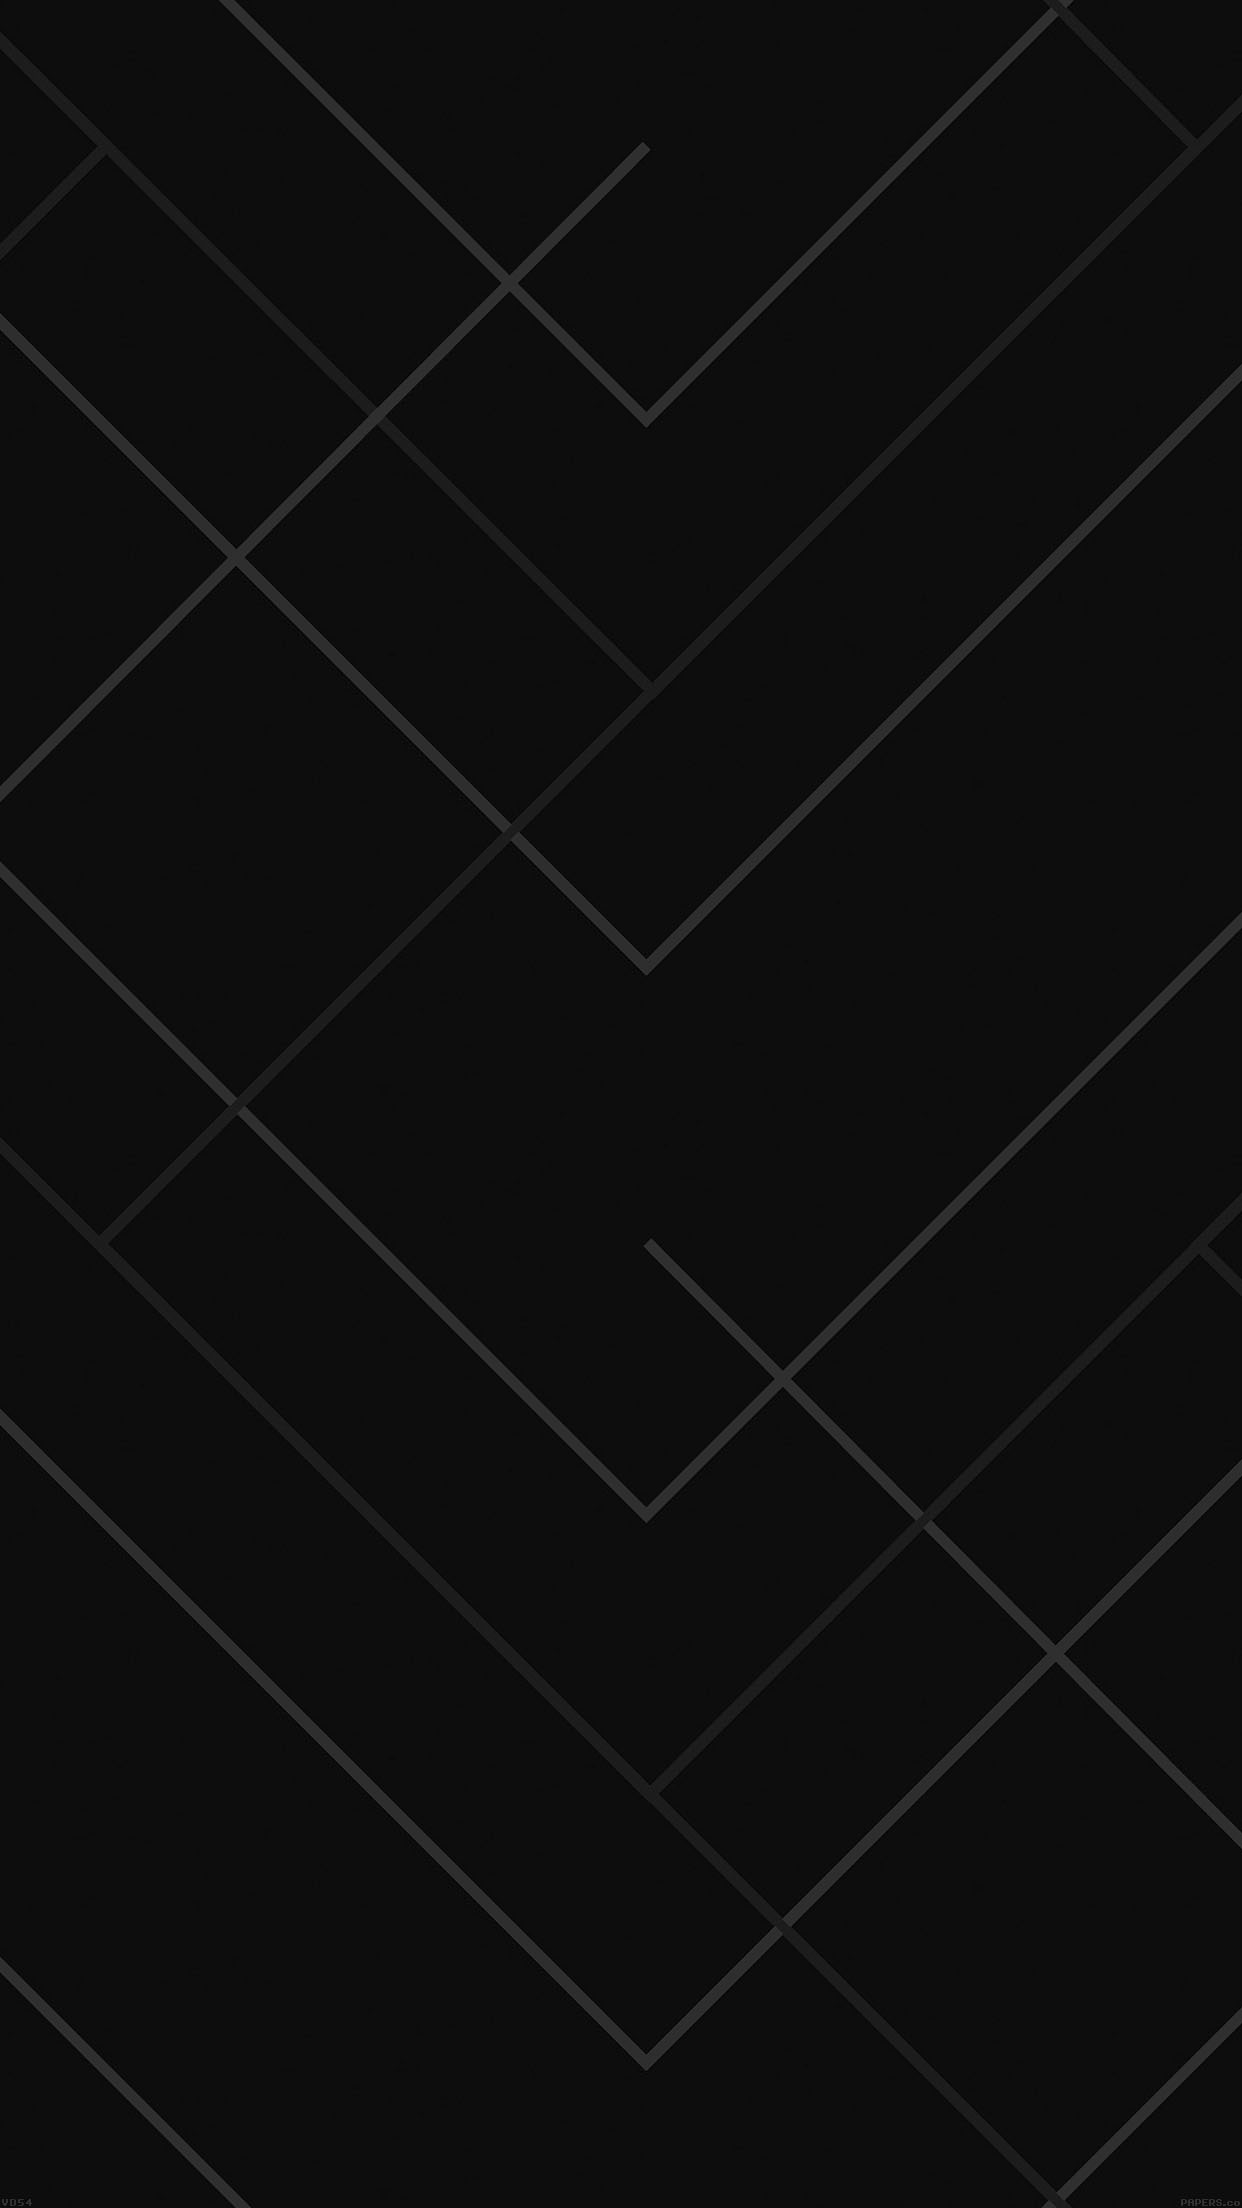 abstract black geometric line pattern android wallpaper android hd wallpapers